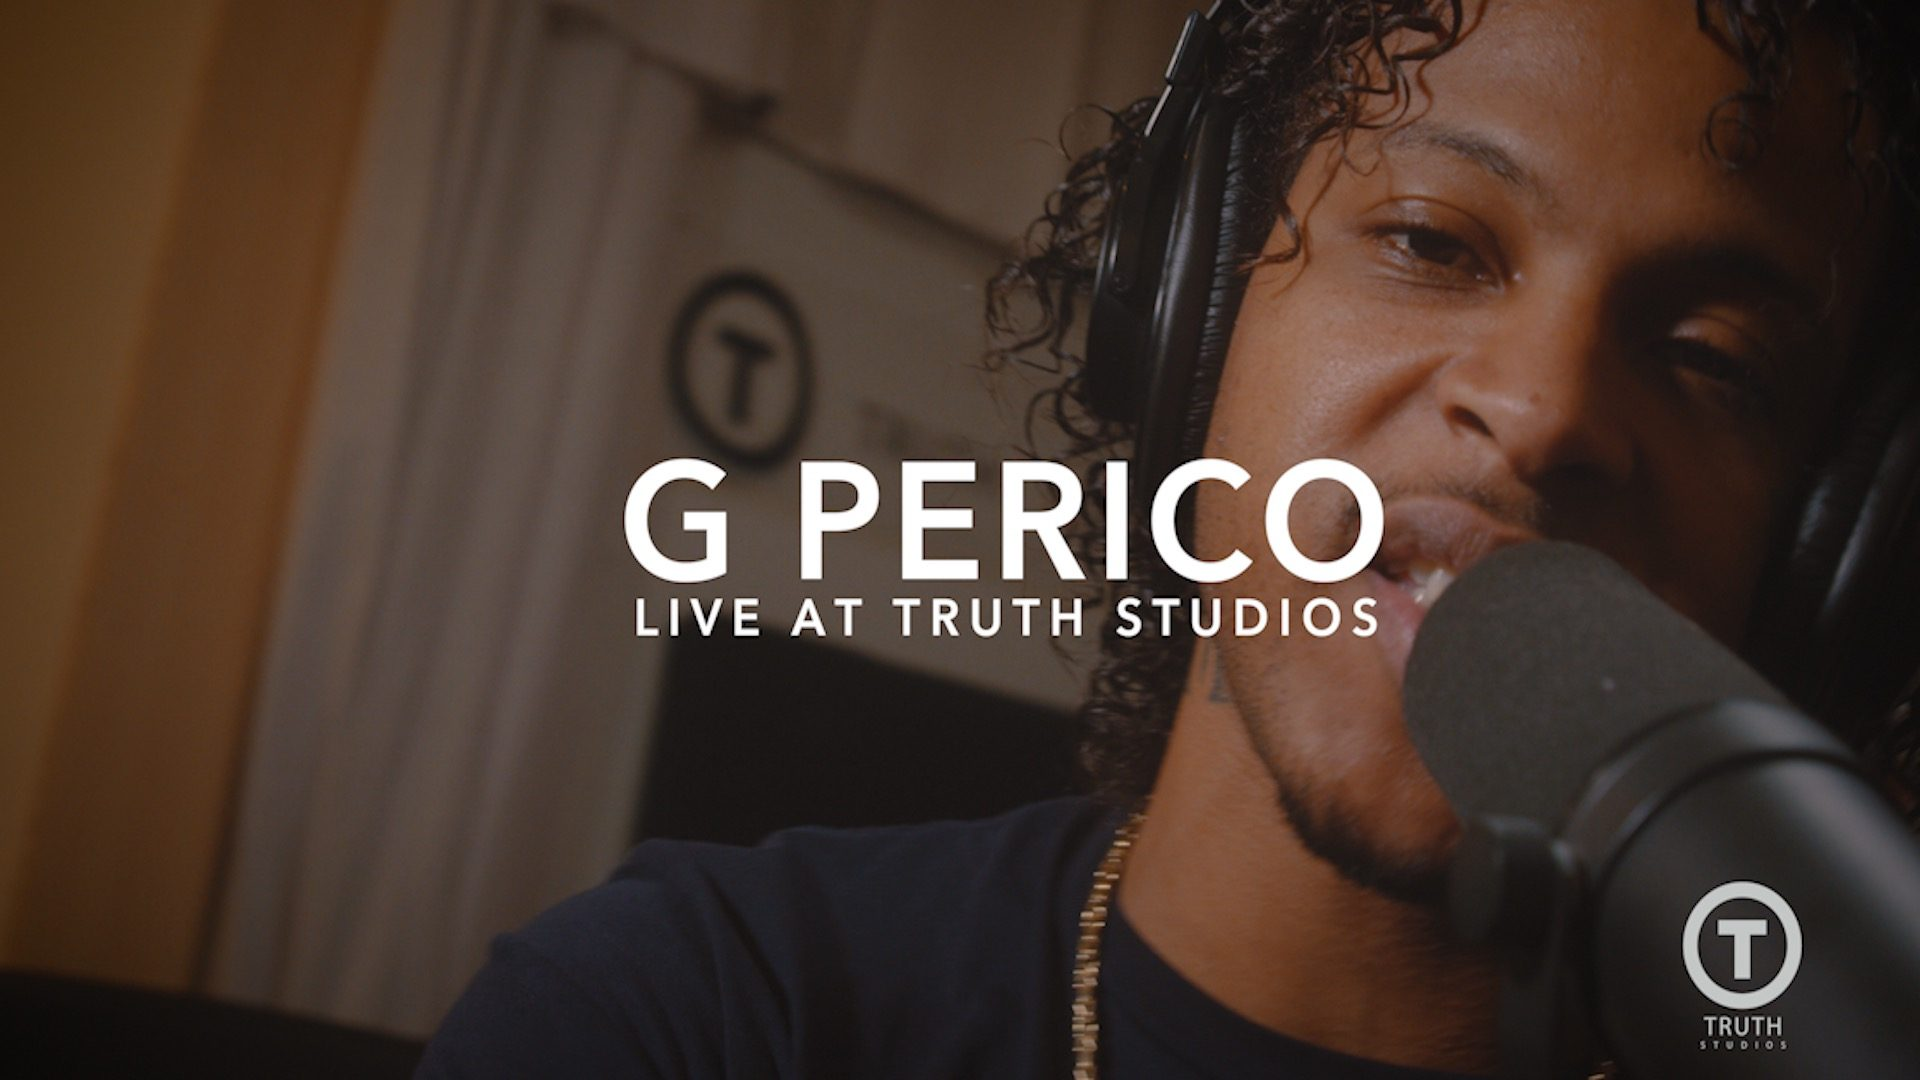 G Perico - Gets My Staccs (#OneTake) Live at Truth Studios